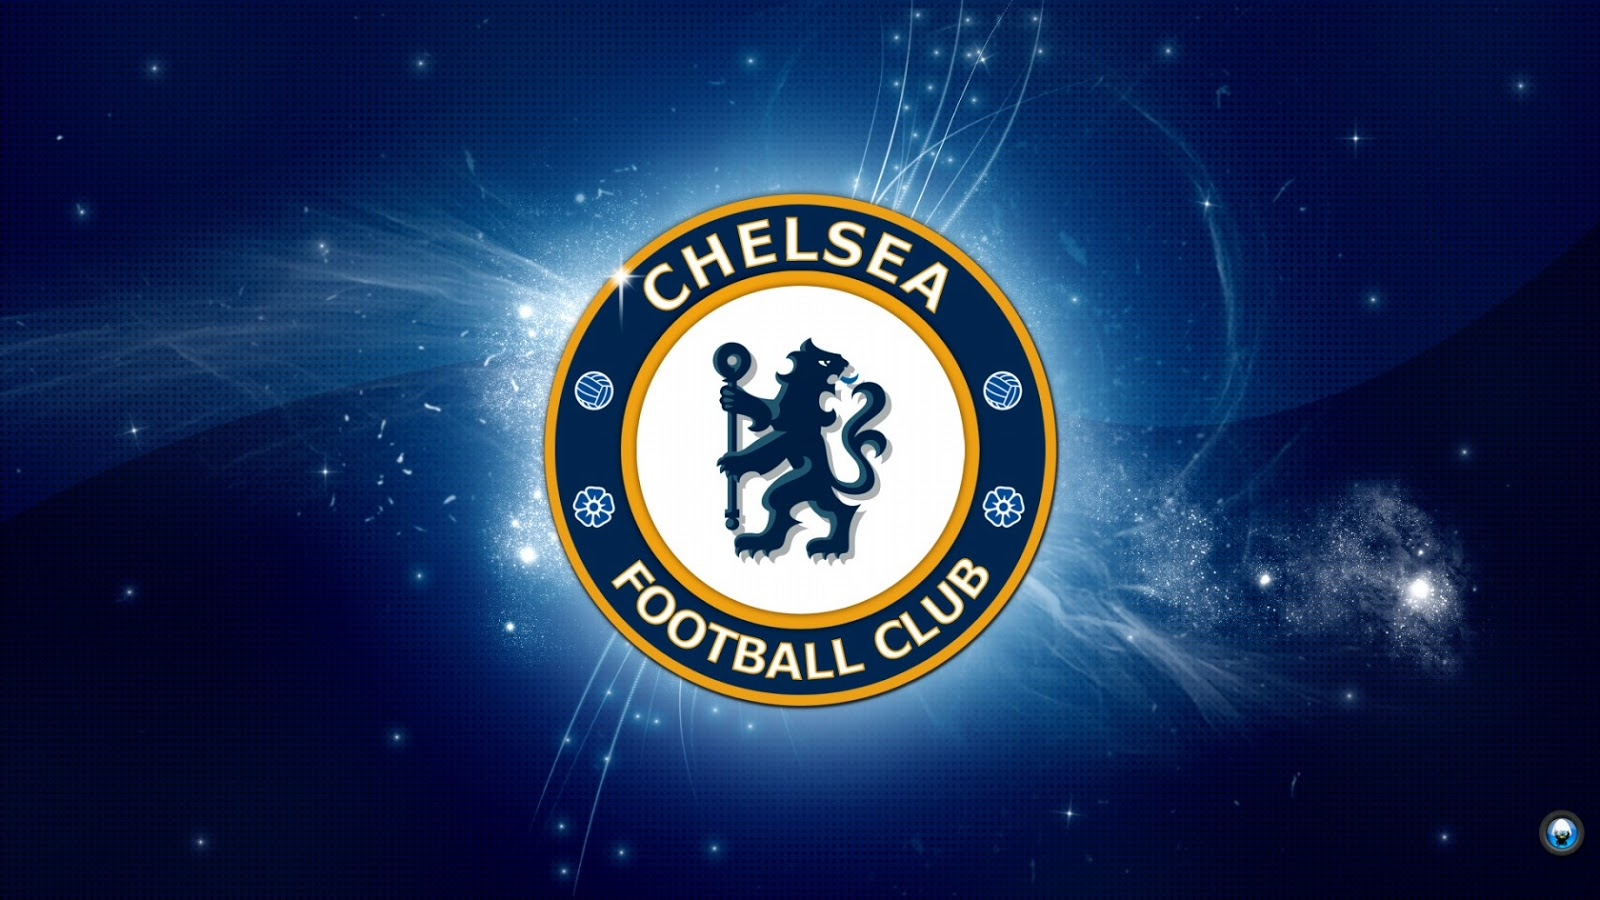 All Wallpapers: Chelsea FC Logo Wallpapers 2013Chelsea